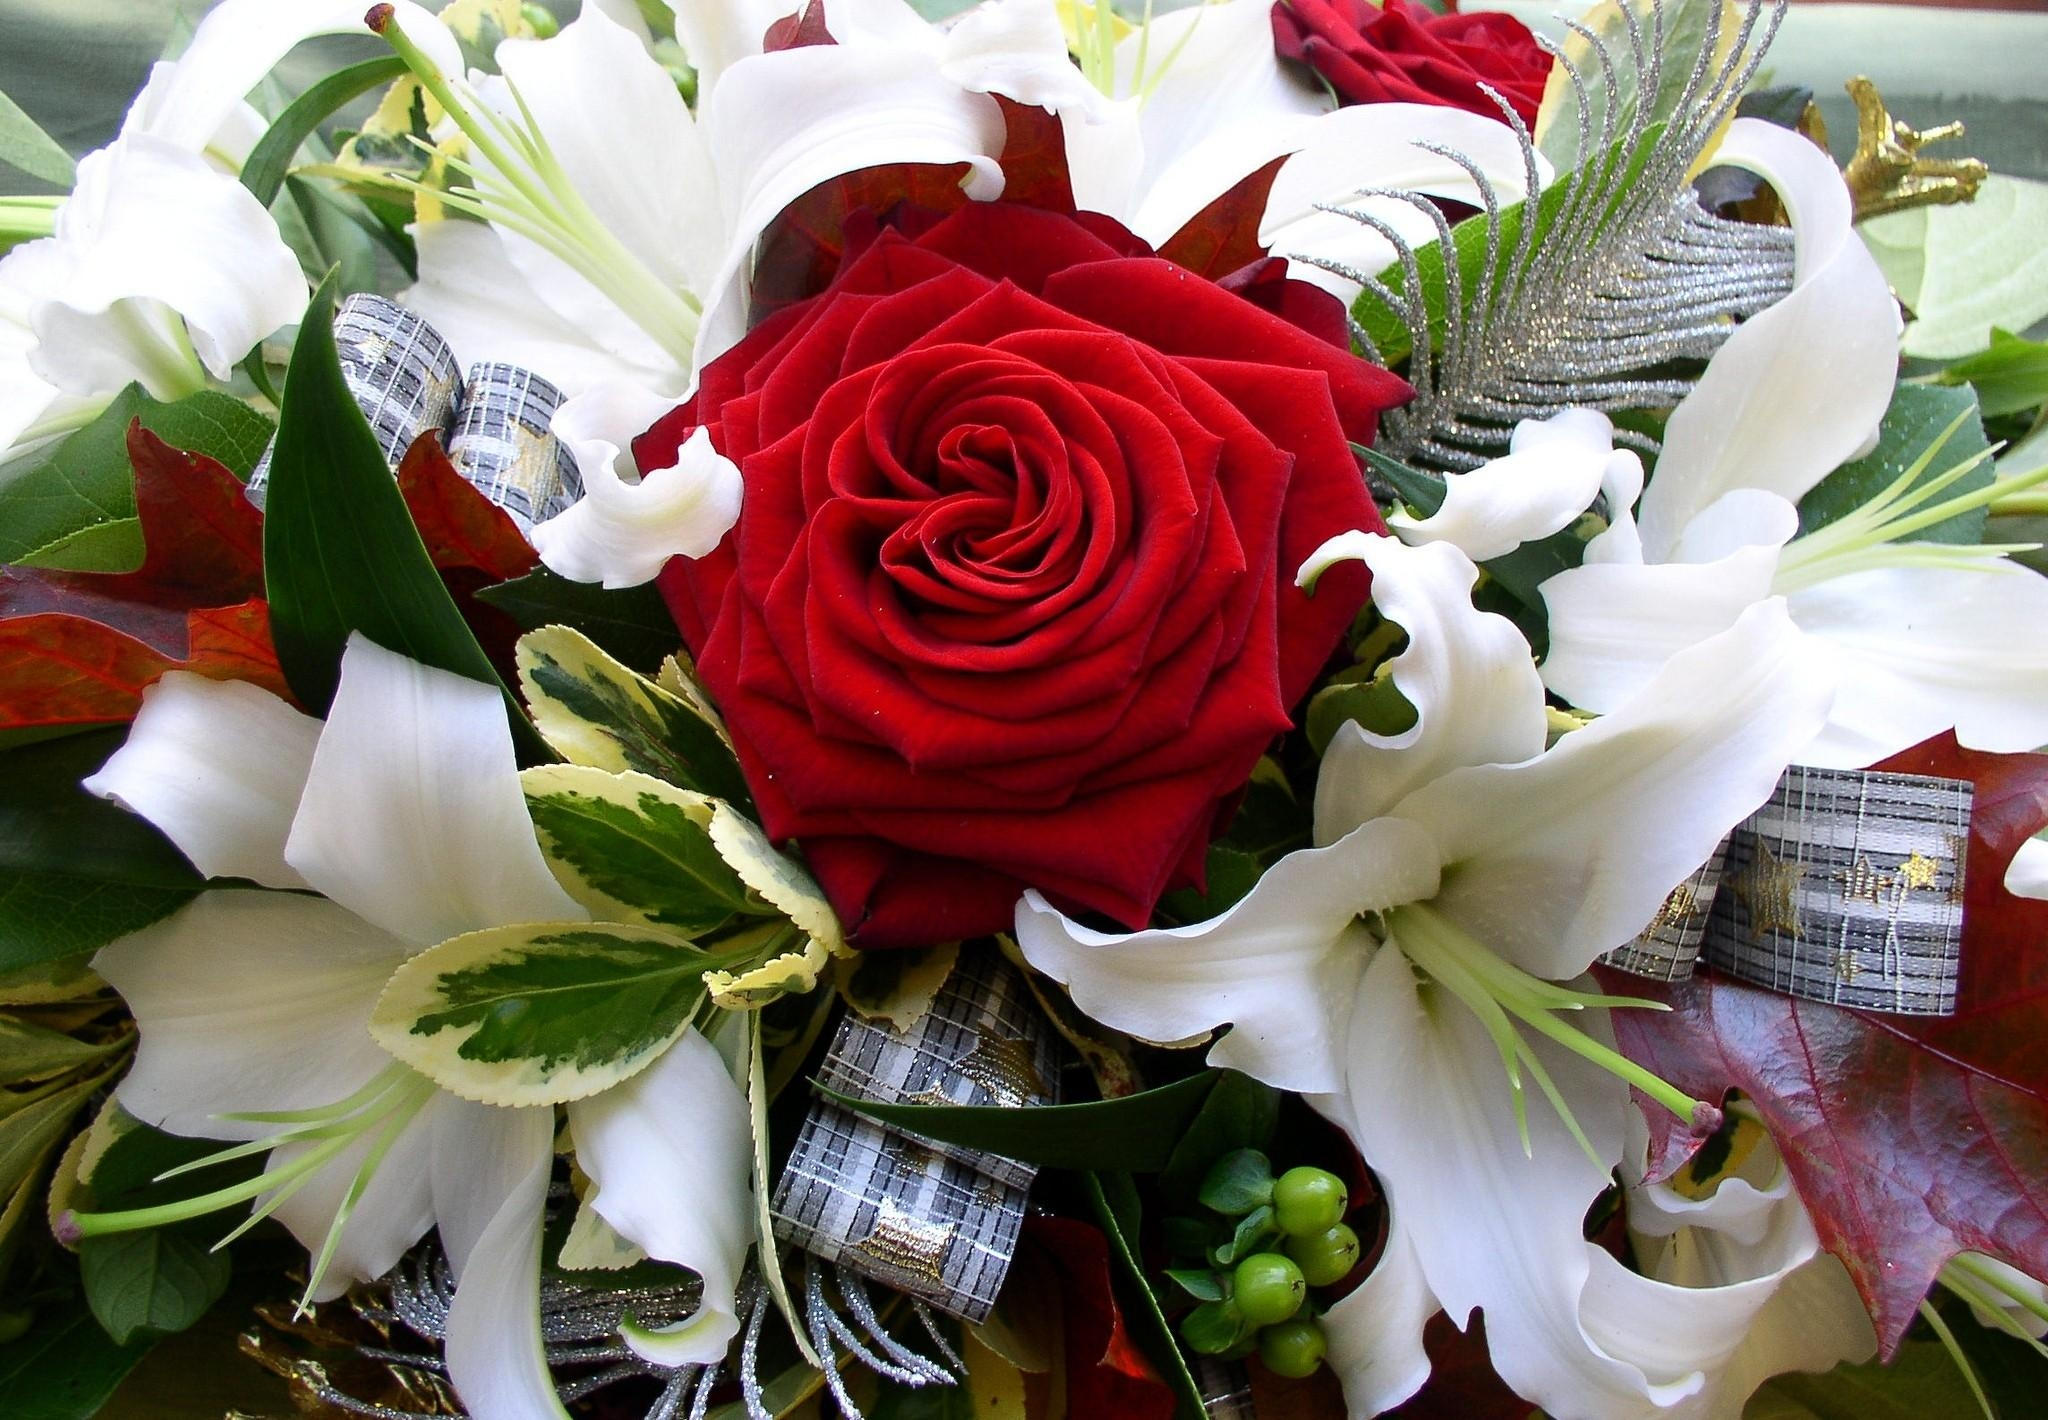 105350 download wallpaper Flowers, Roses, Decorations, Lilies, Bouquet, Tape screensavers and pictures for free